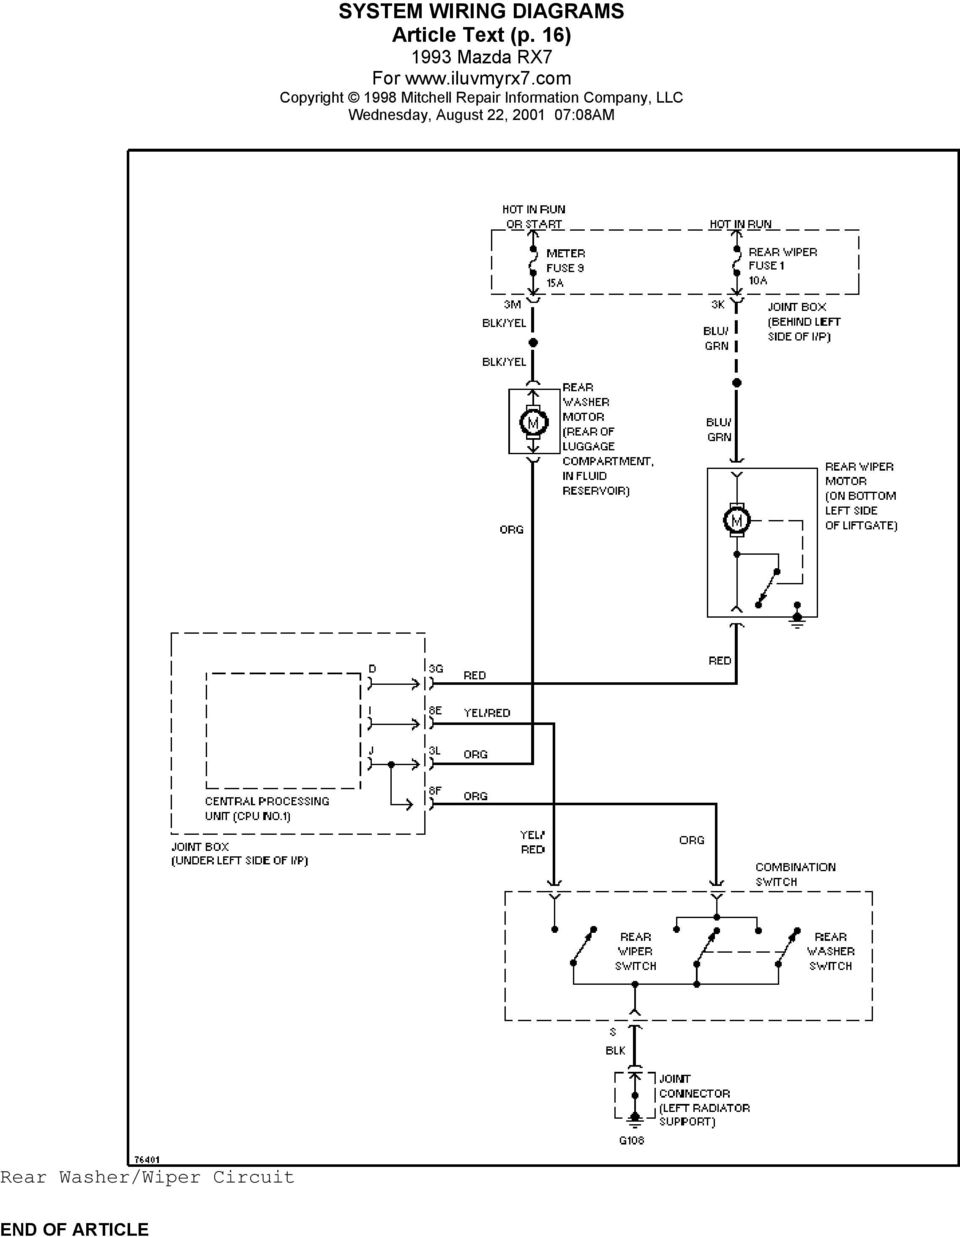 This File Is Available For Free Download At Pdf Porsche Cdr 24 Wiring 18 Diagram Symbols Article Text Wednesday August 22 09am Beginning Diagrams How To Use The